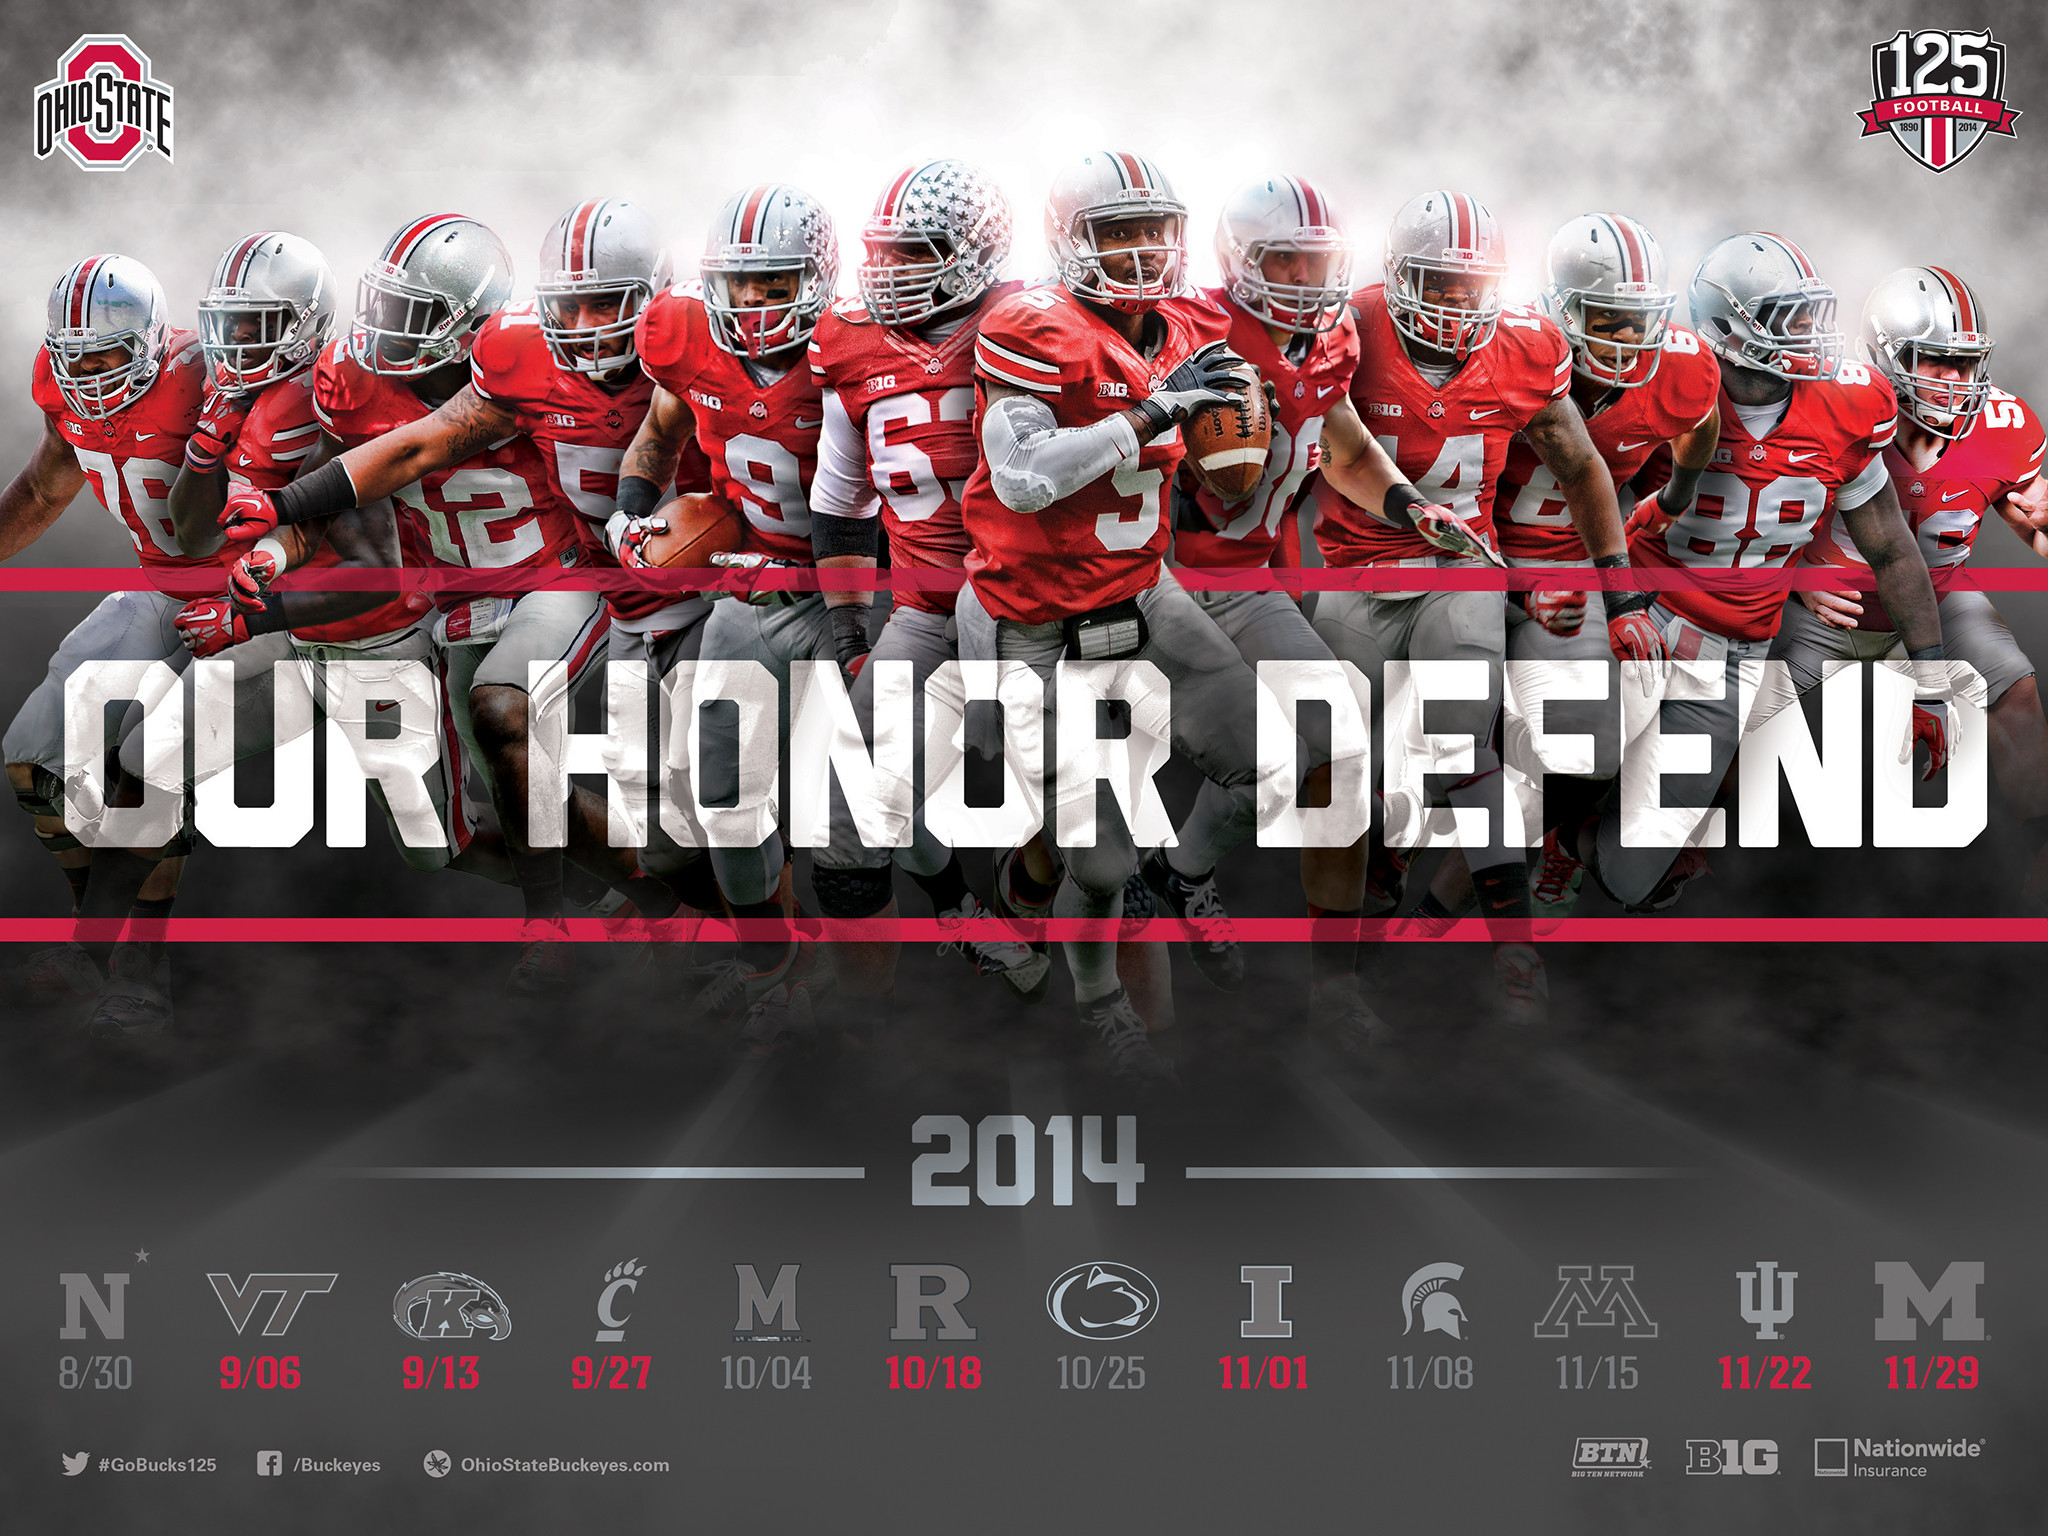 Download The Ohio State Football 2014 Schedule Poster for Printing and Desktop  Wallpaper